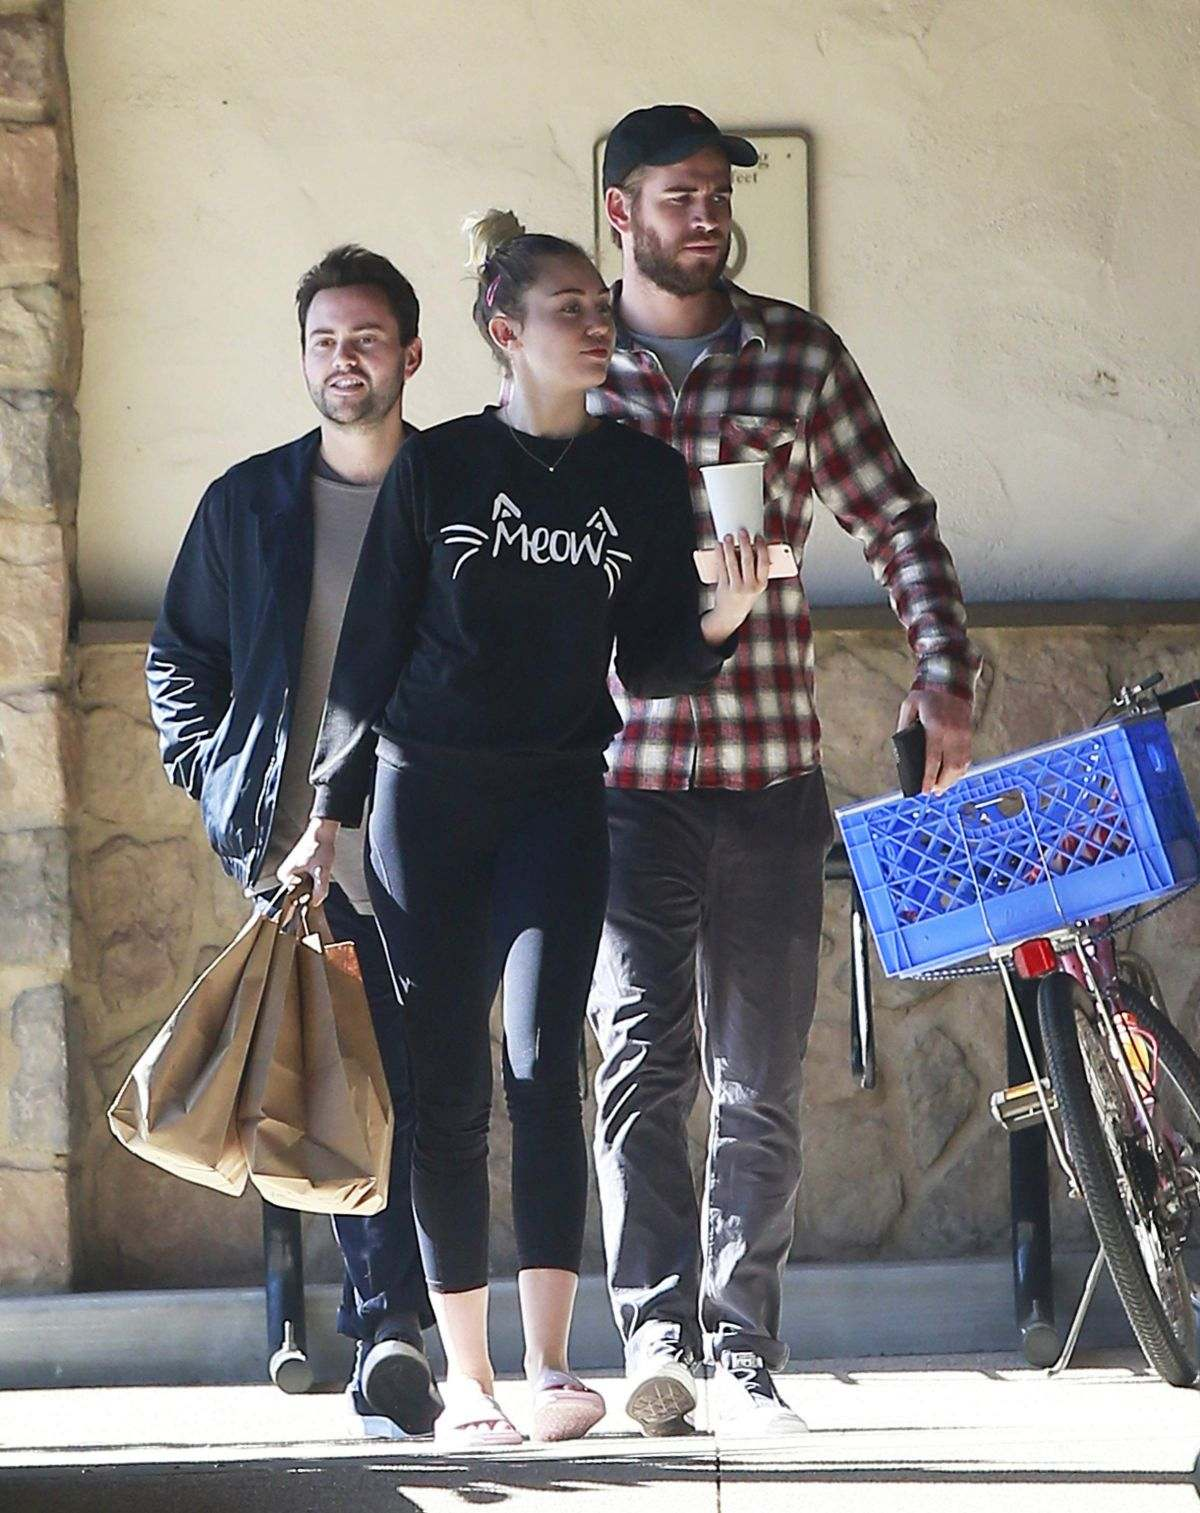 MIley Cyrus and Liam Hemsworth shopping in LA on 01.06.17